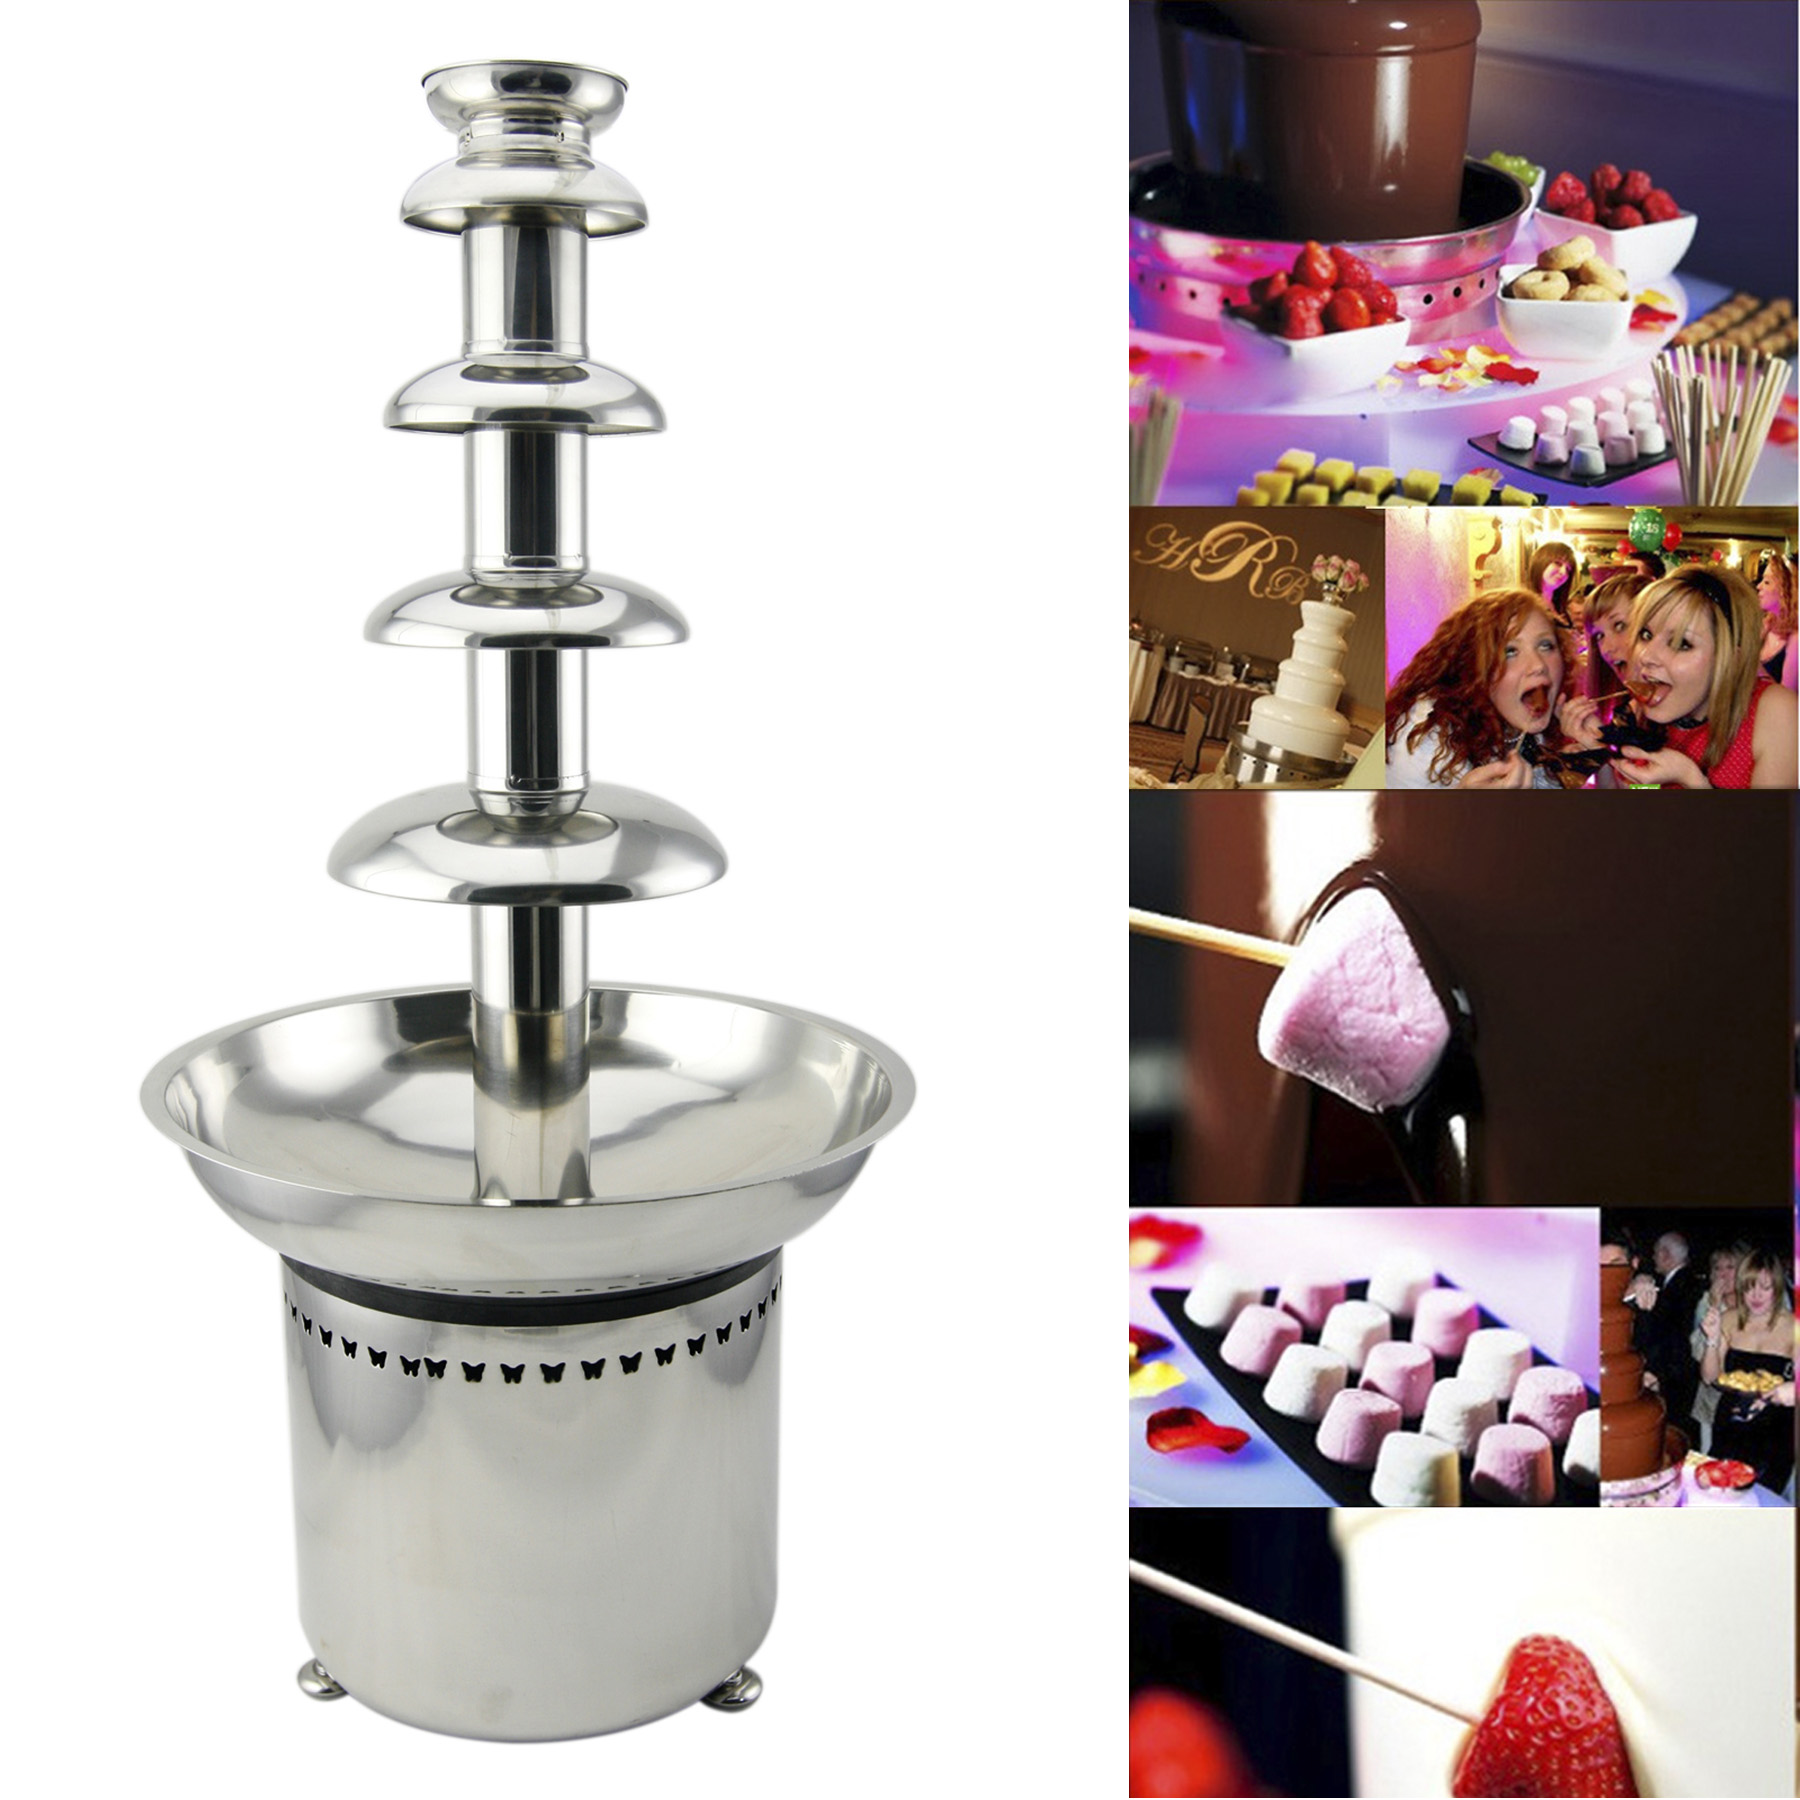 CO-Z 27' 5-Tier Stainless Steel Chocolate Fondue Fountain LARGE for Big Wedding Party Hotel by